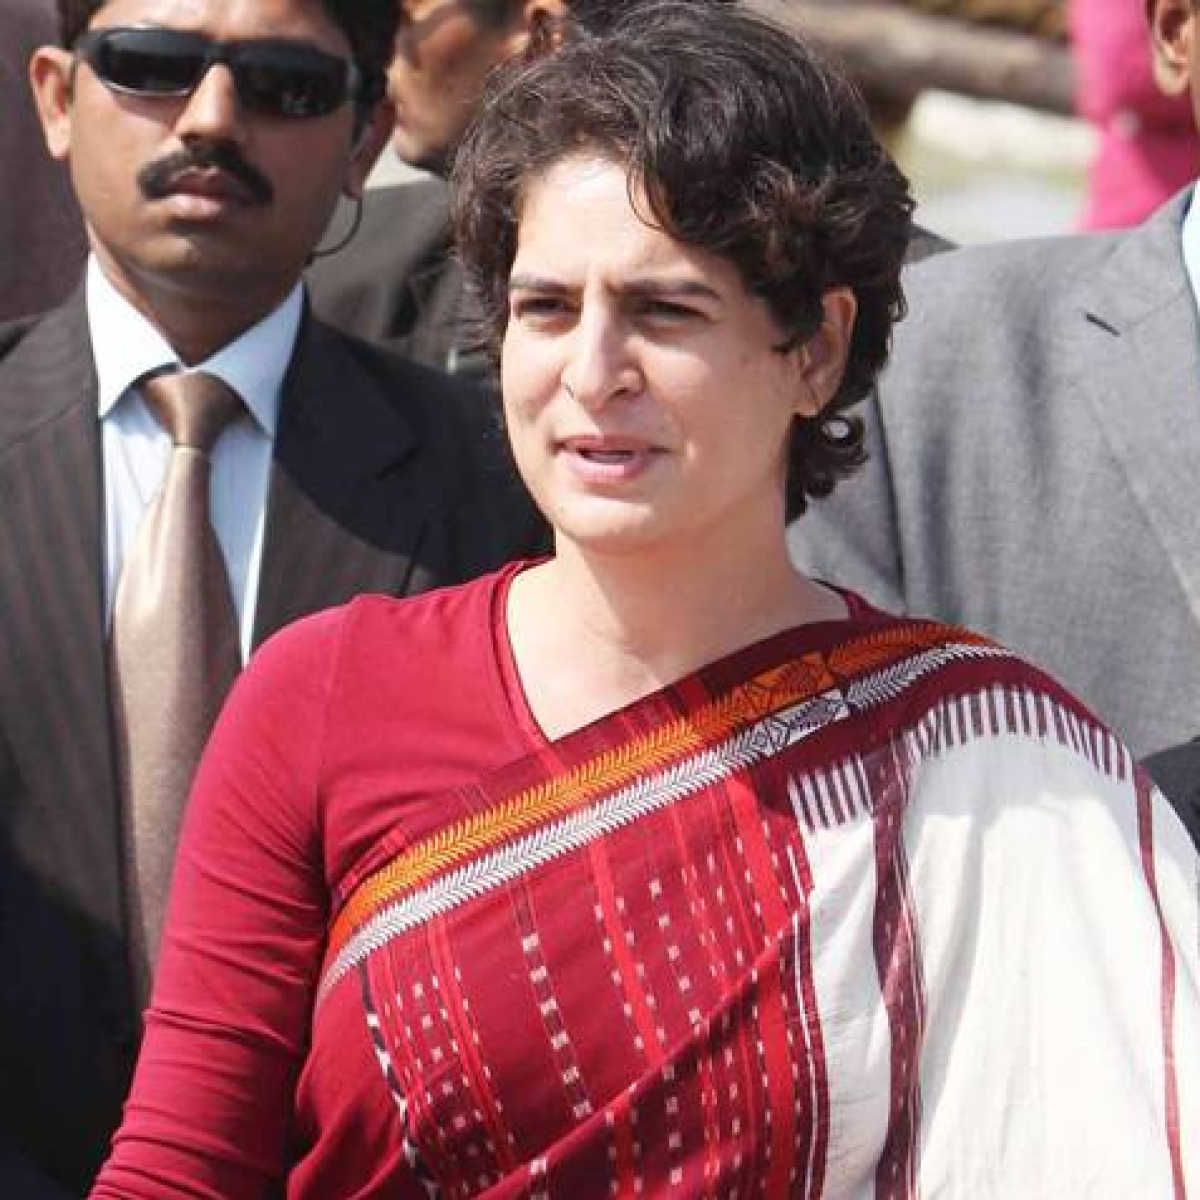 Chinmayanand Case: BJP's UP government wants to suppress the voice seeking justice for the daughter of Shahjahanpur, says Priyanka Gandhi